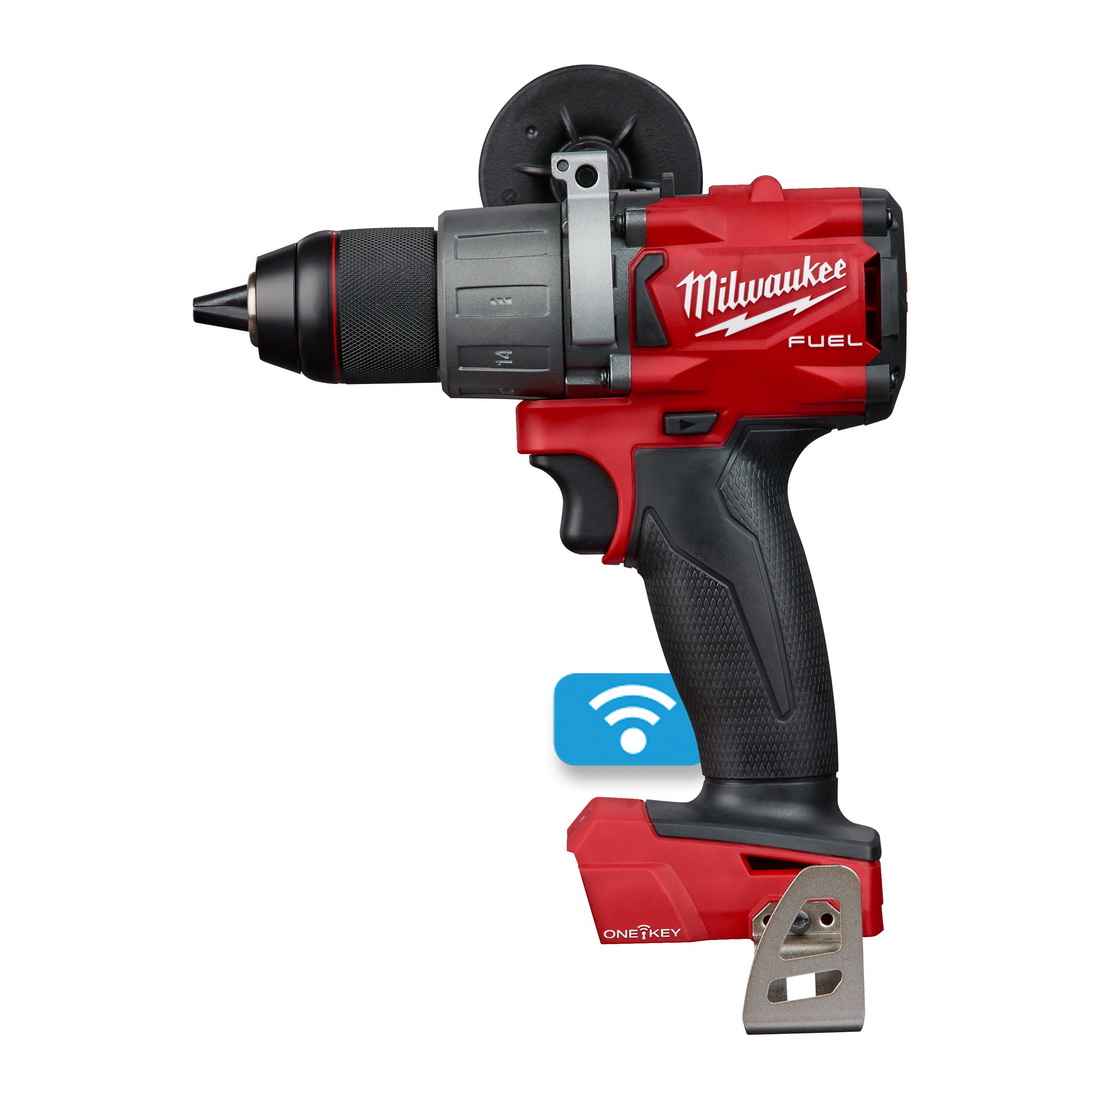 M18 FUEL ONE-KEY Hammer Drill/Driver (Tool Only)